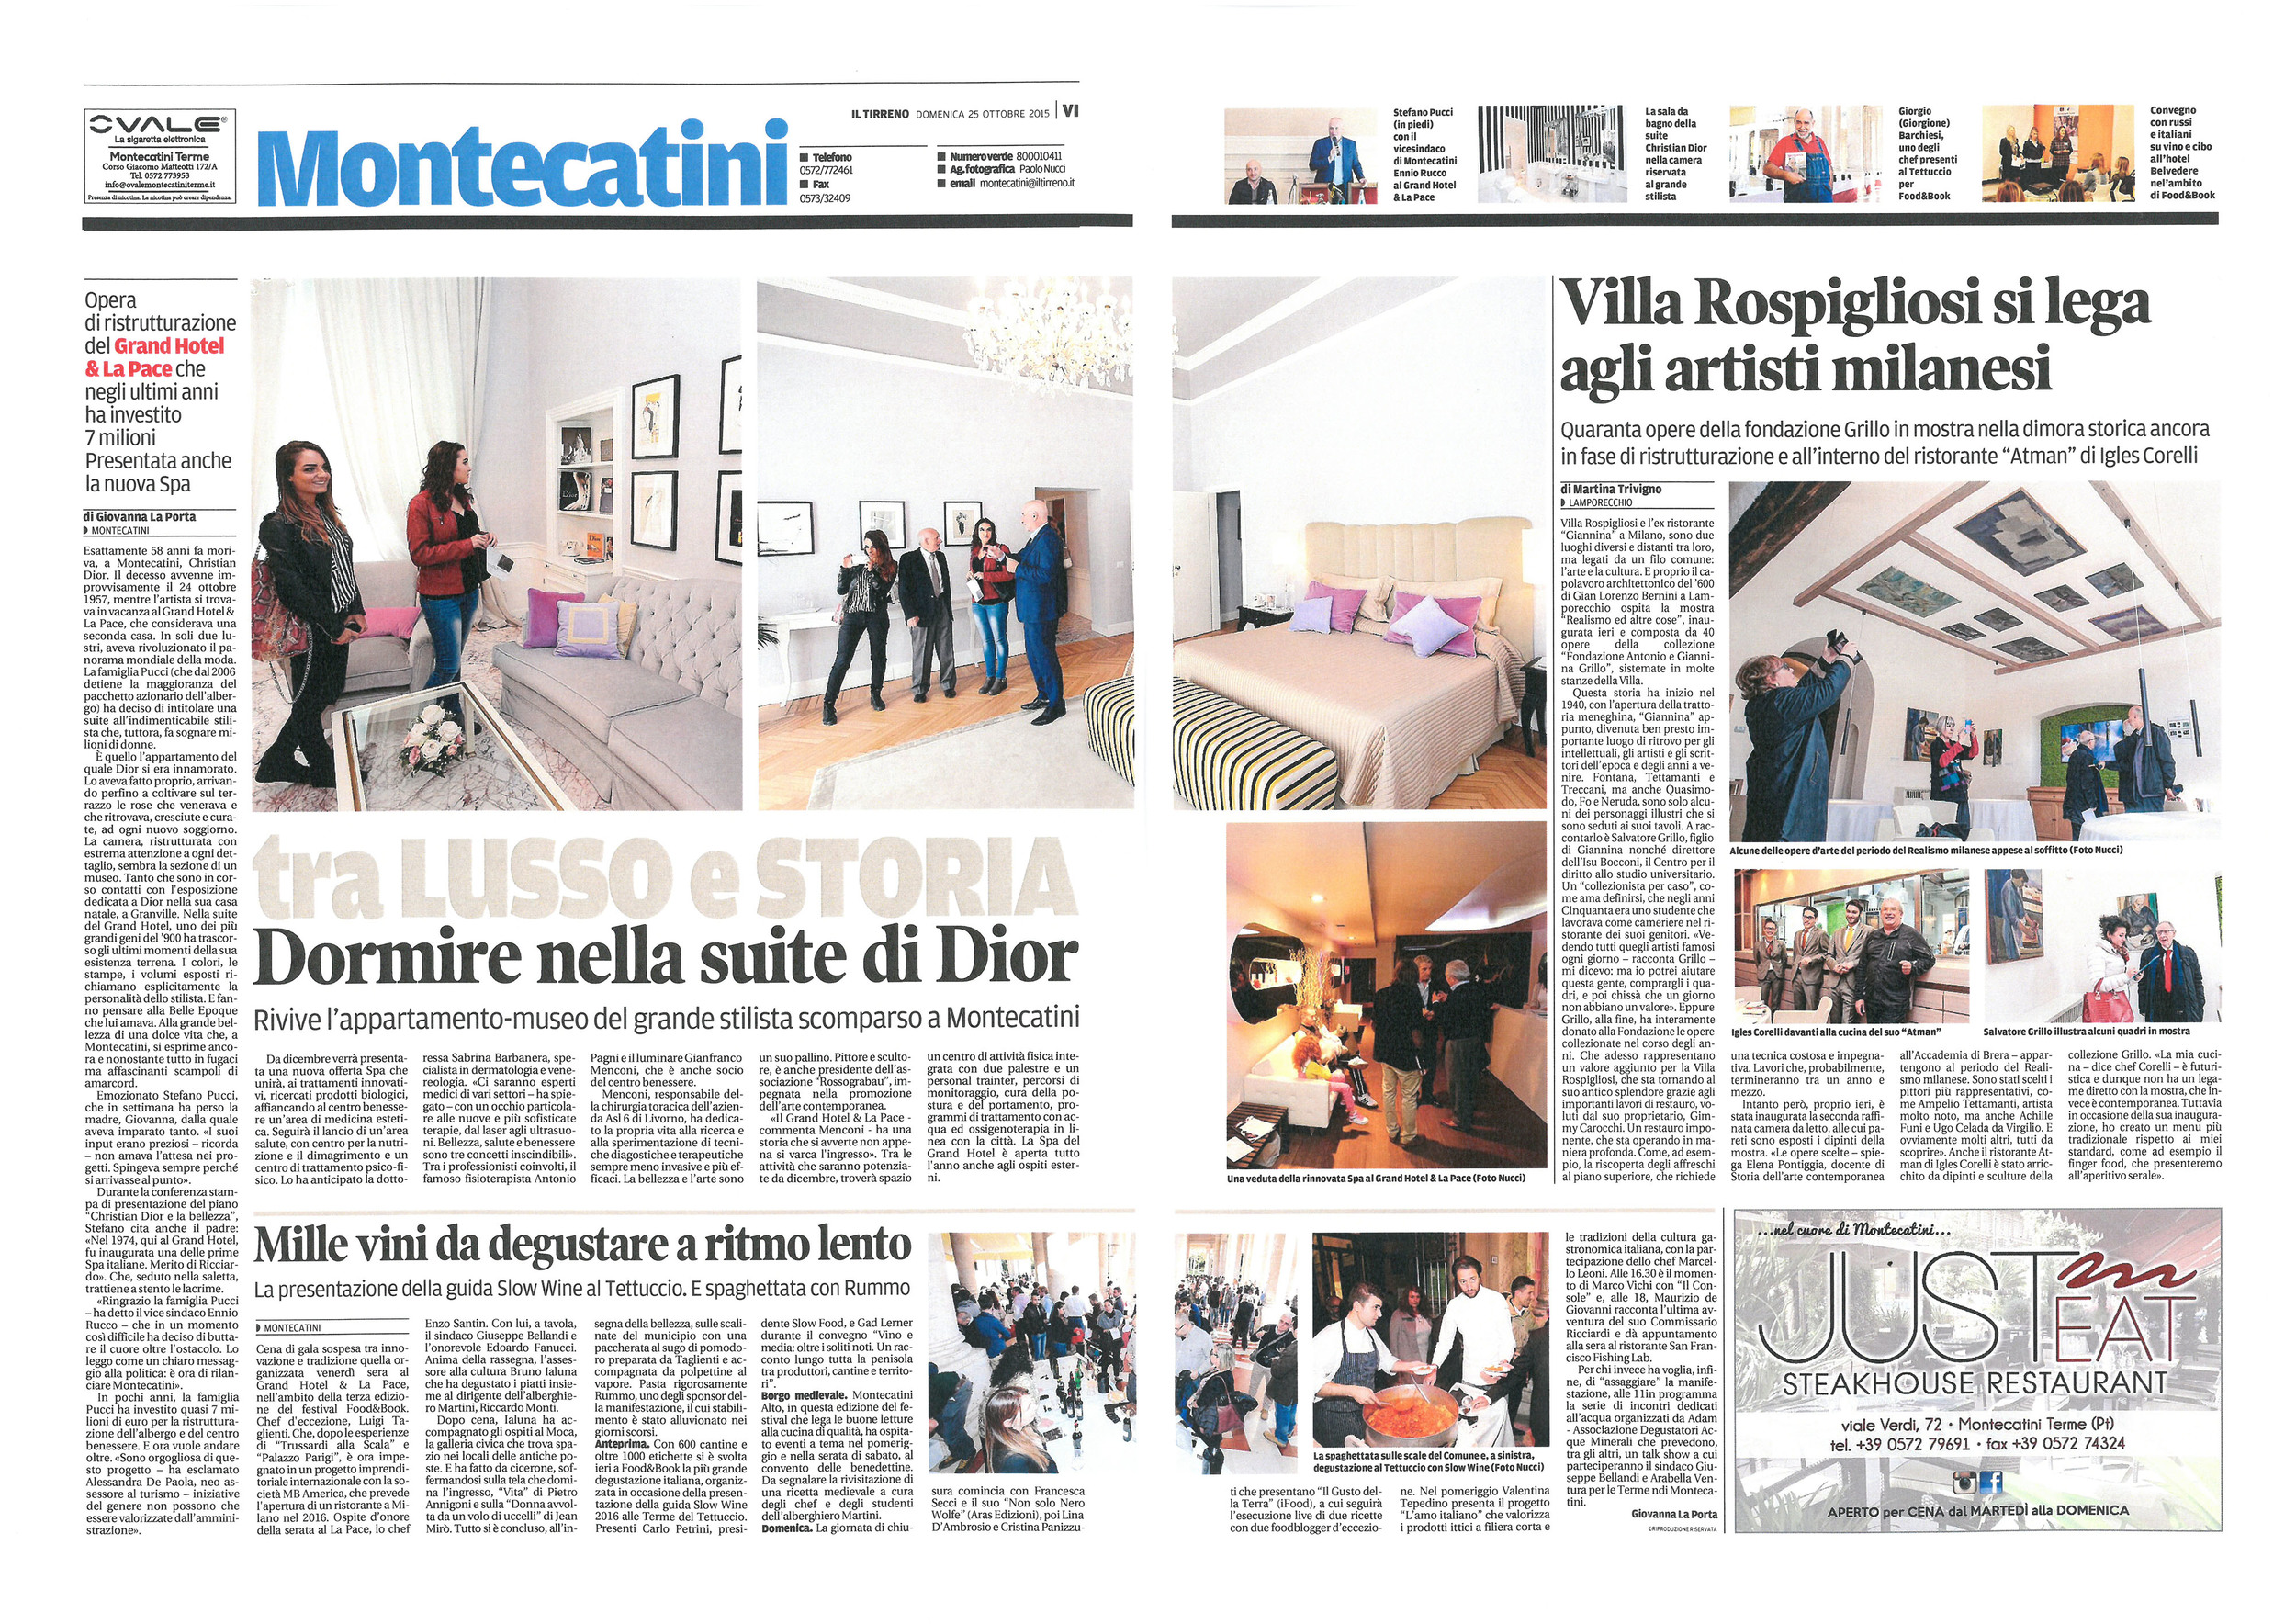 """<p><strong>IL TIRRENO</strong><a href=""""/s/IL_TIRRENO_25_10_15.pdf"""" target=""""_blank"""">Download Article→</a></p>"""